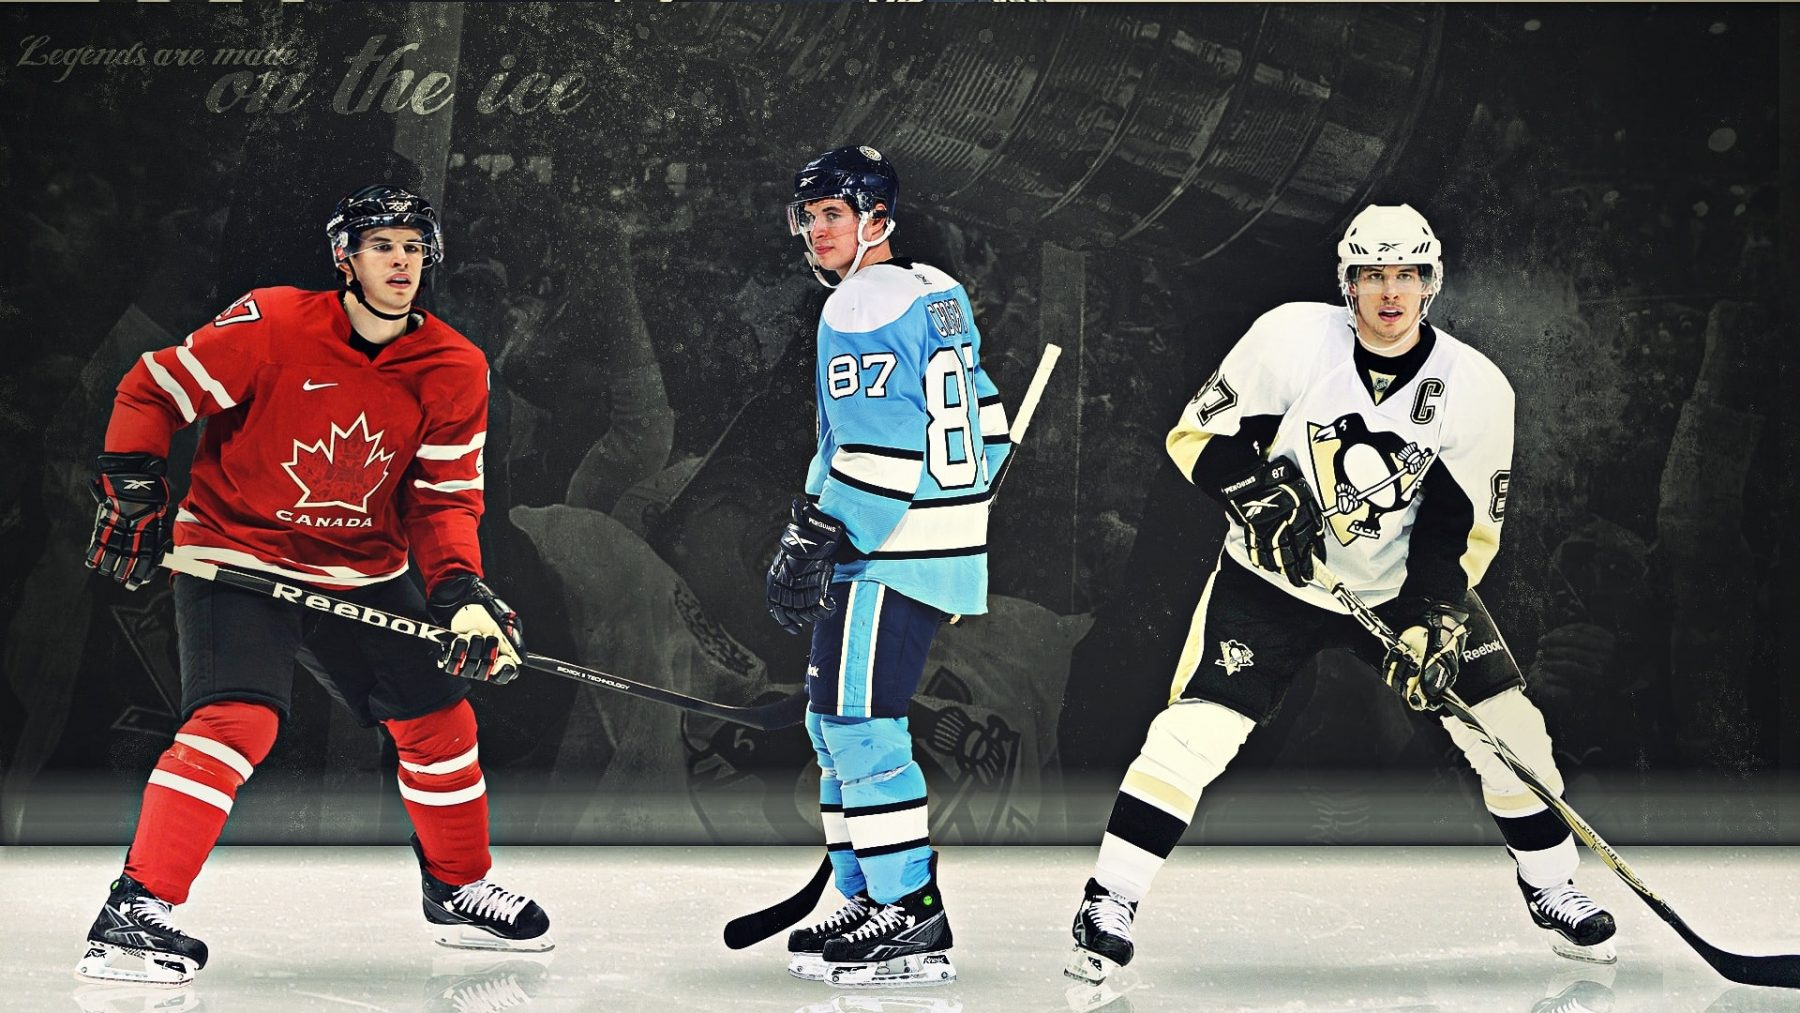 ddc44fd3b29 Sidney Crosby Backgrounds Sidney Crosby Pictures